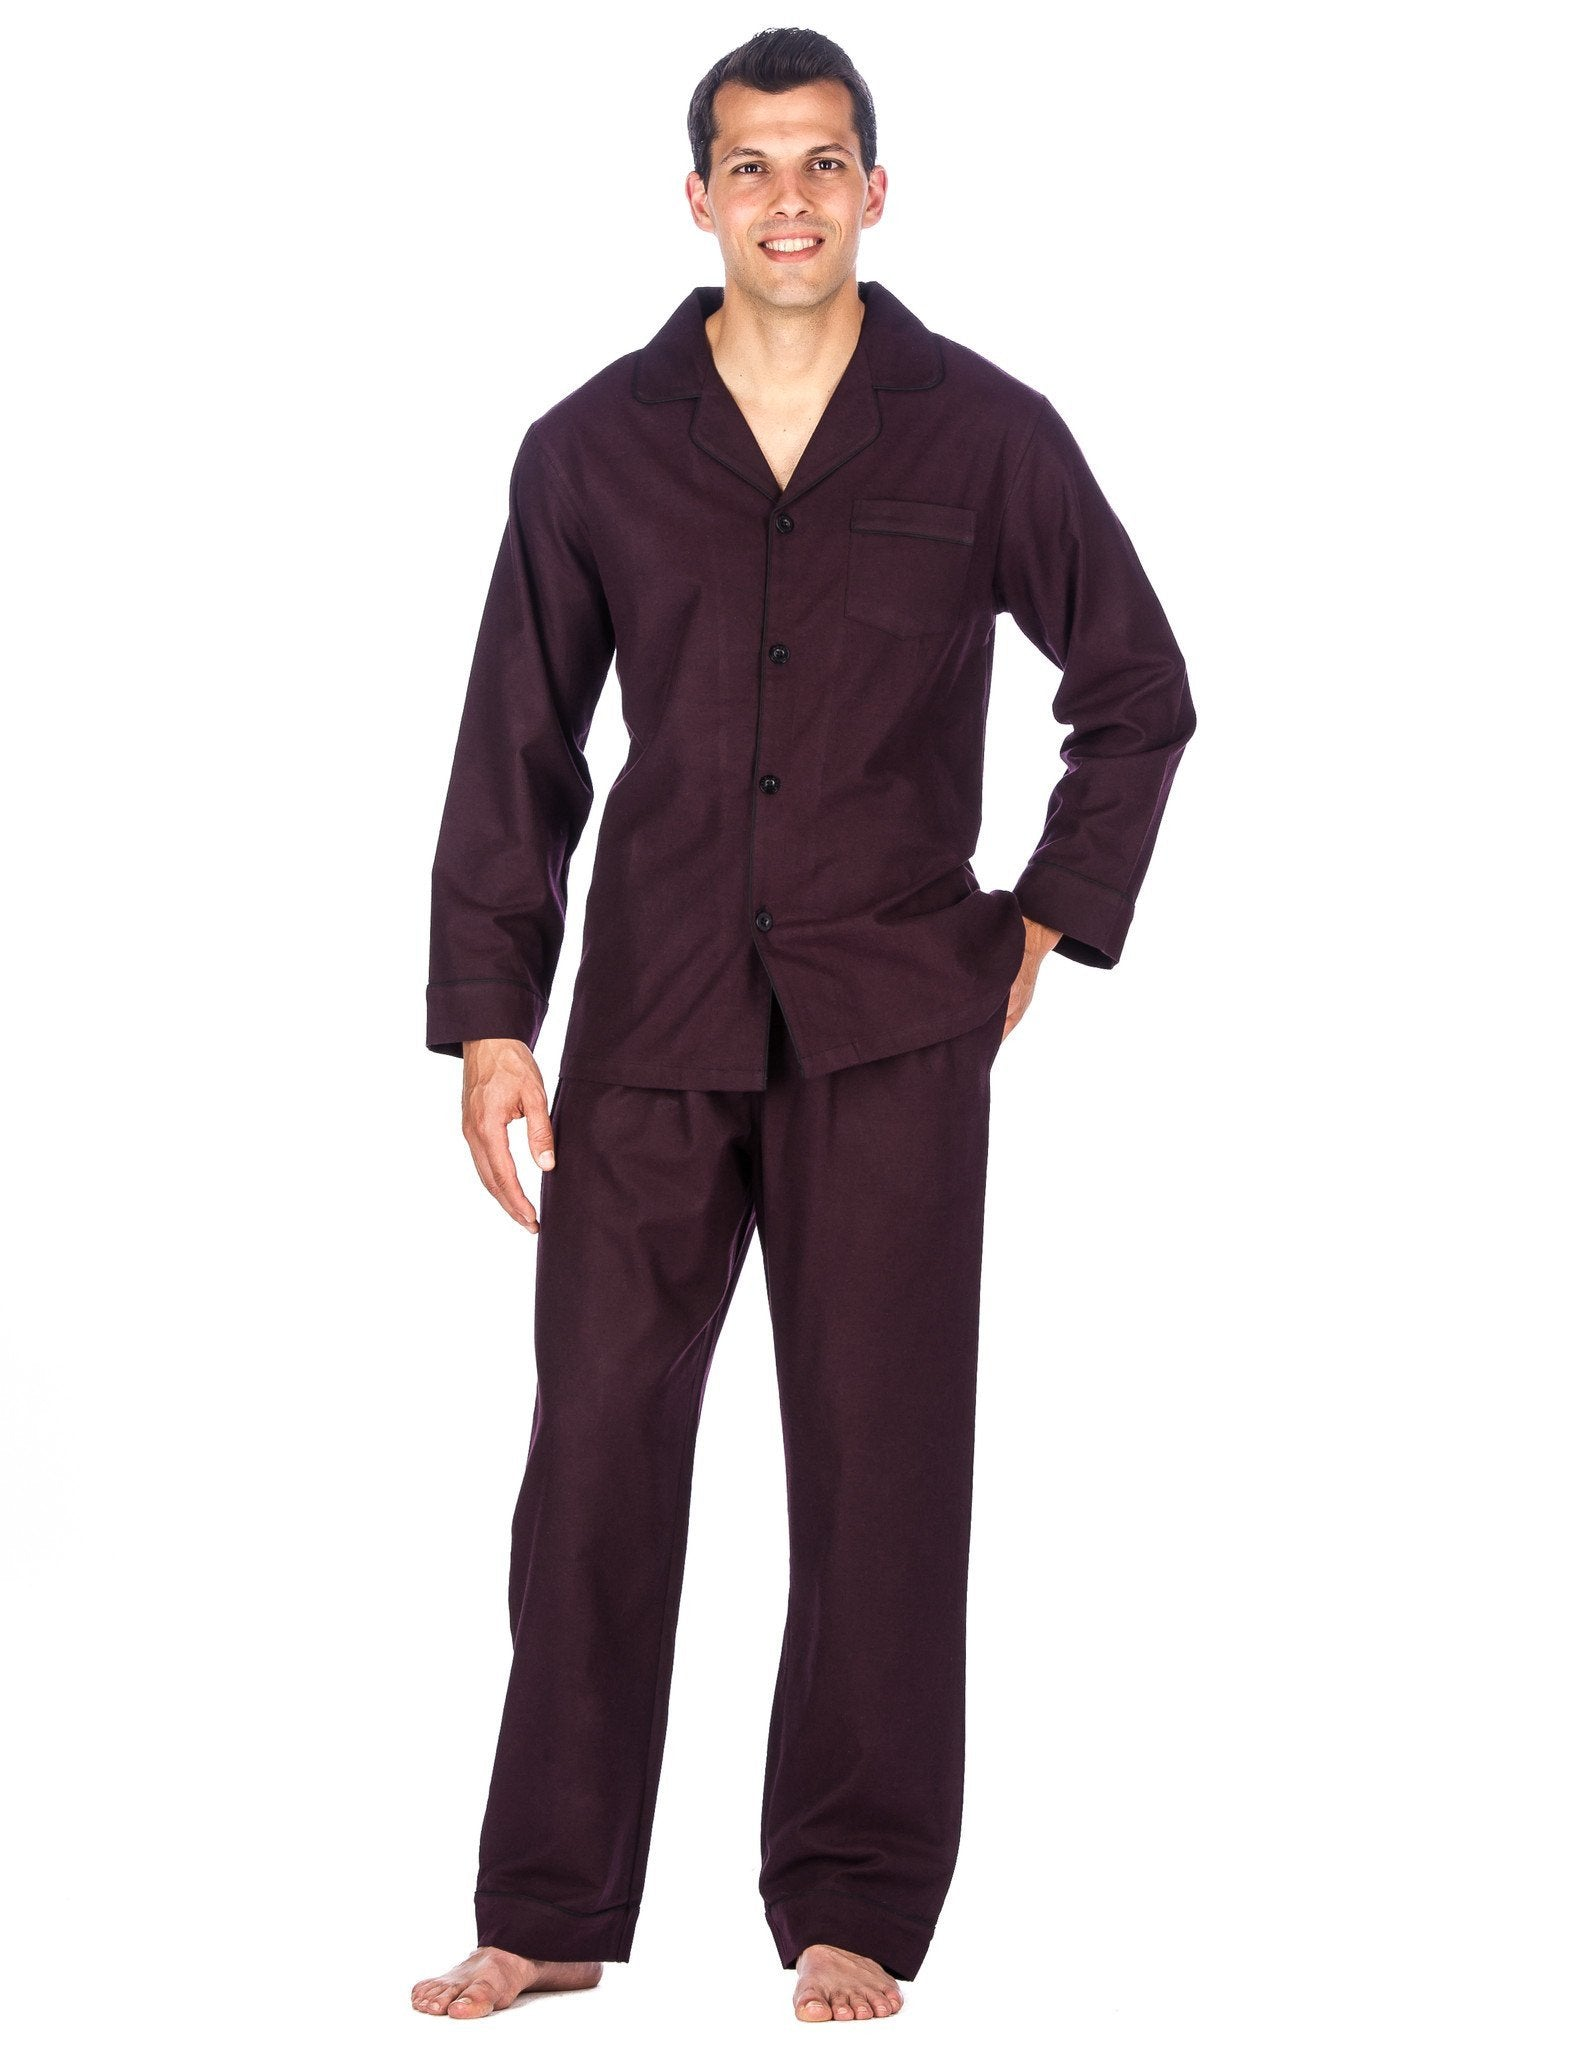 Relaxed Fit Men's Premium 100% Cotton Flannel Pajama Sleepwear Set - Fig